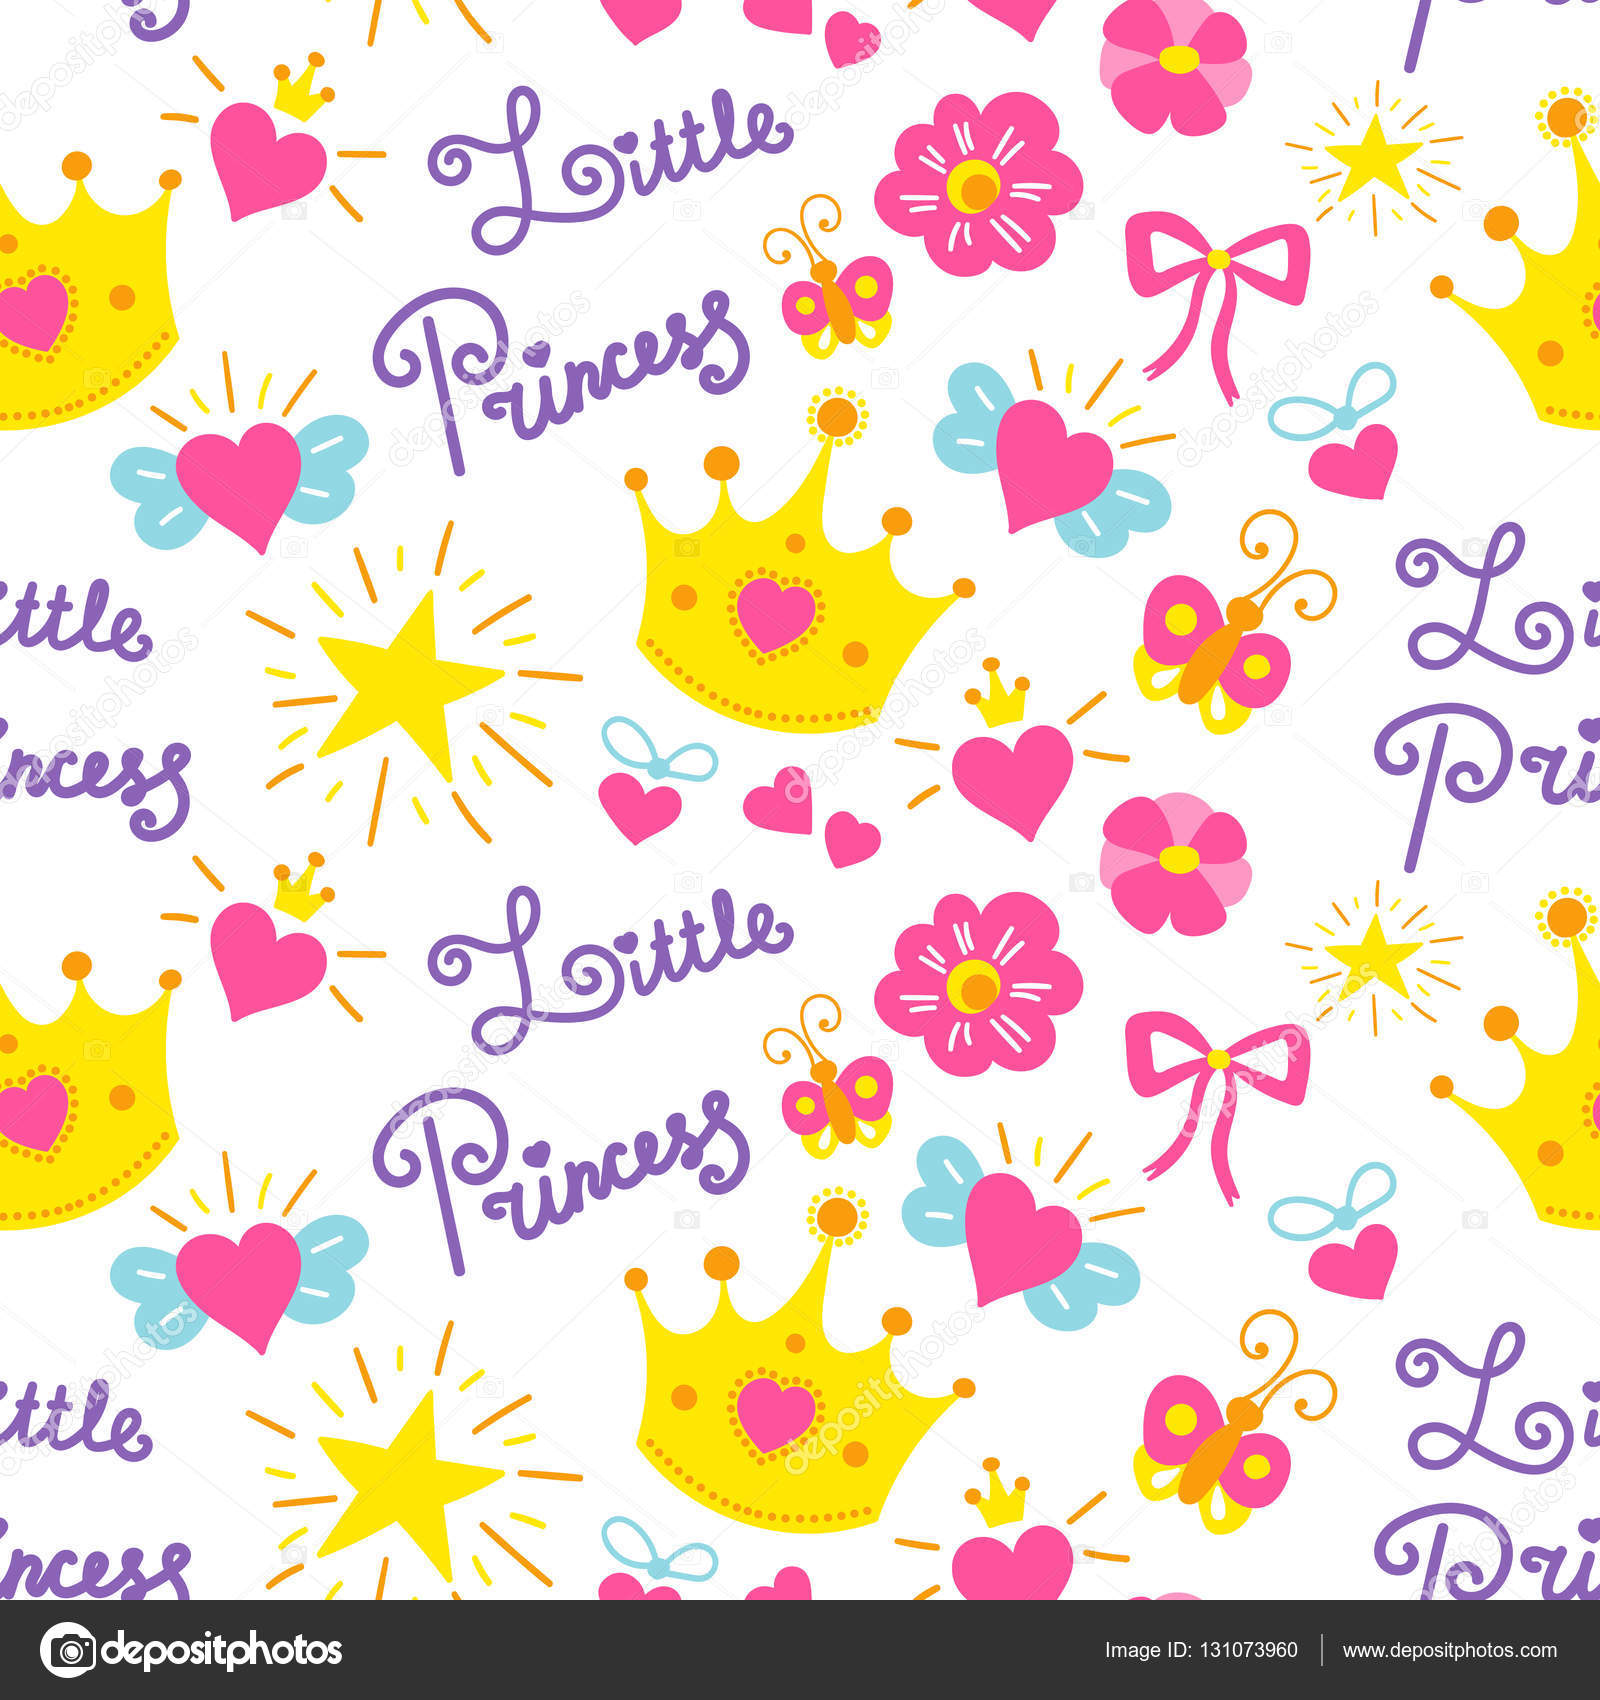 Little princess pattern vector cute girl background for birthday little princess pattern vector cute girl background for birthday card baby shower invitation stopboris Choice Image